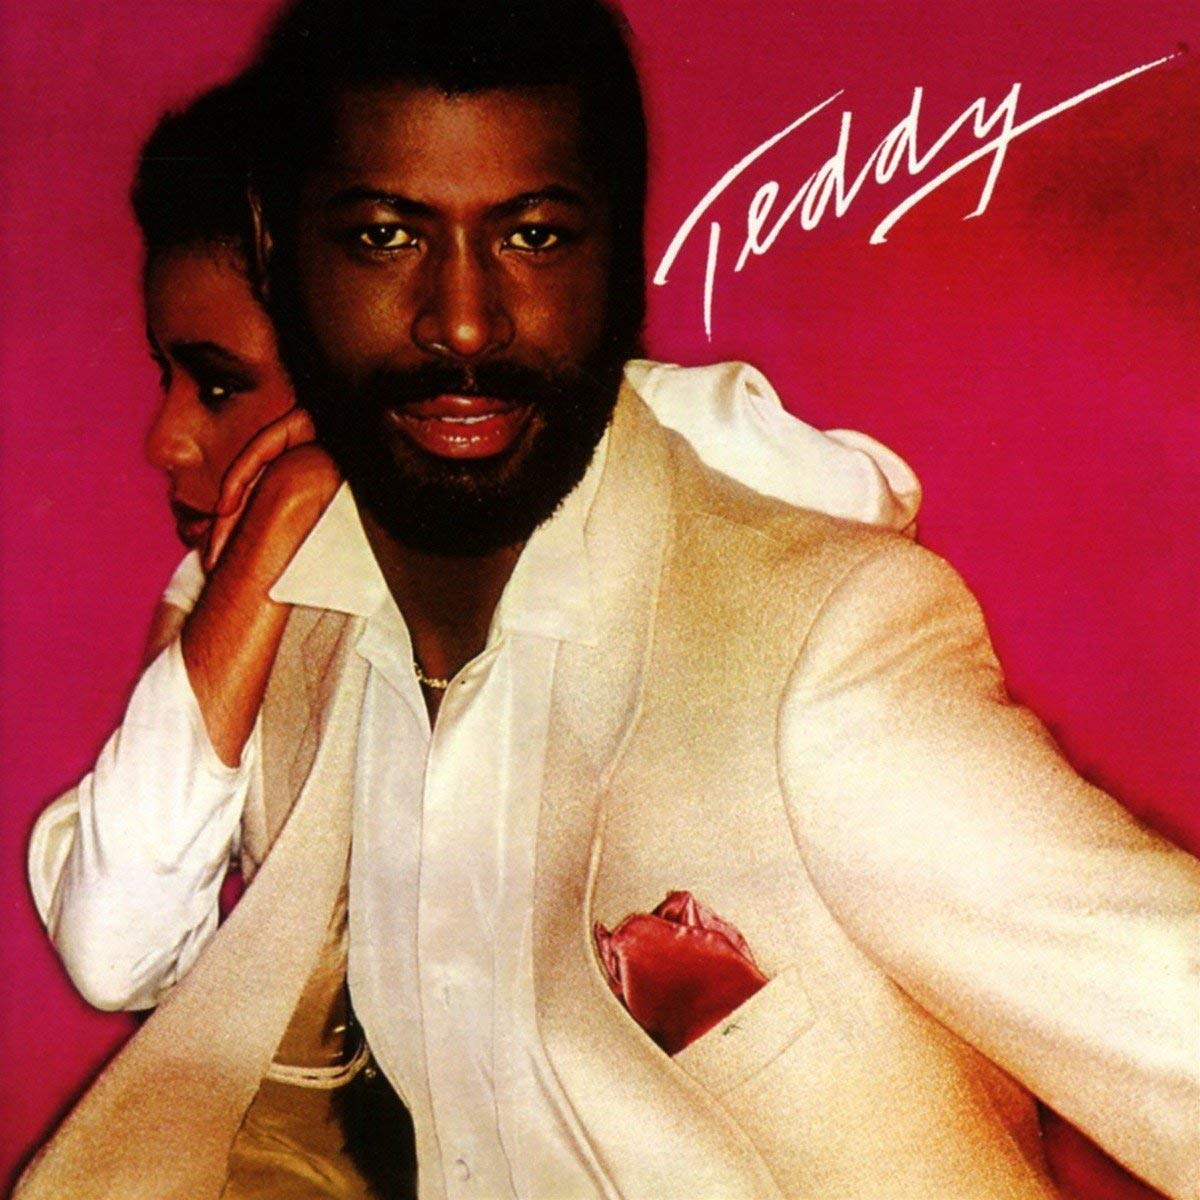 Teddy Pendergrass. Teddy embroidered rose applique lace teddy